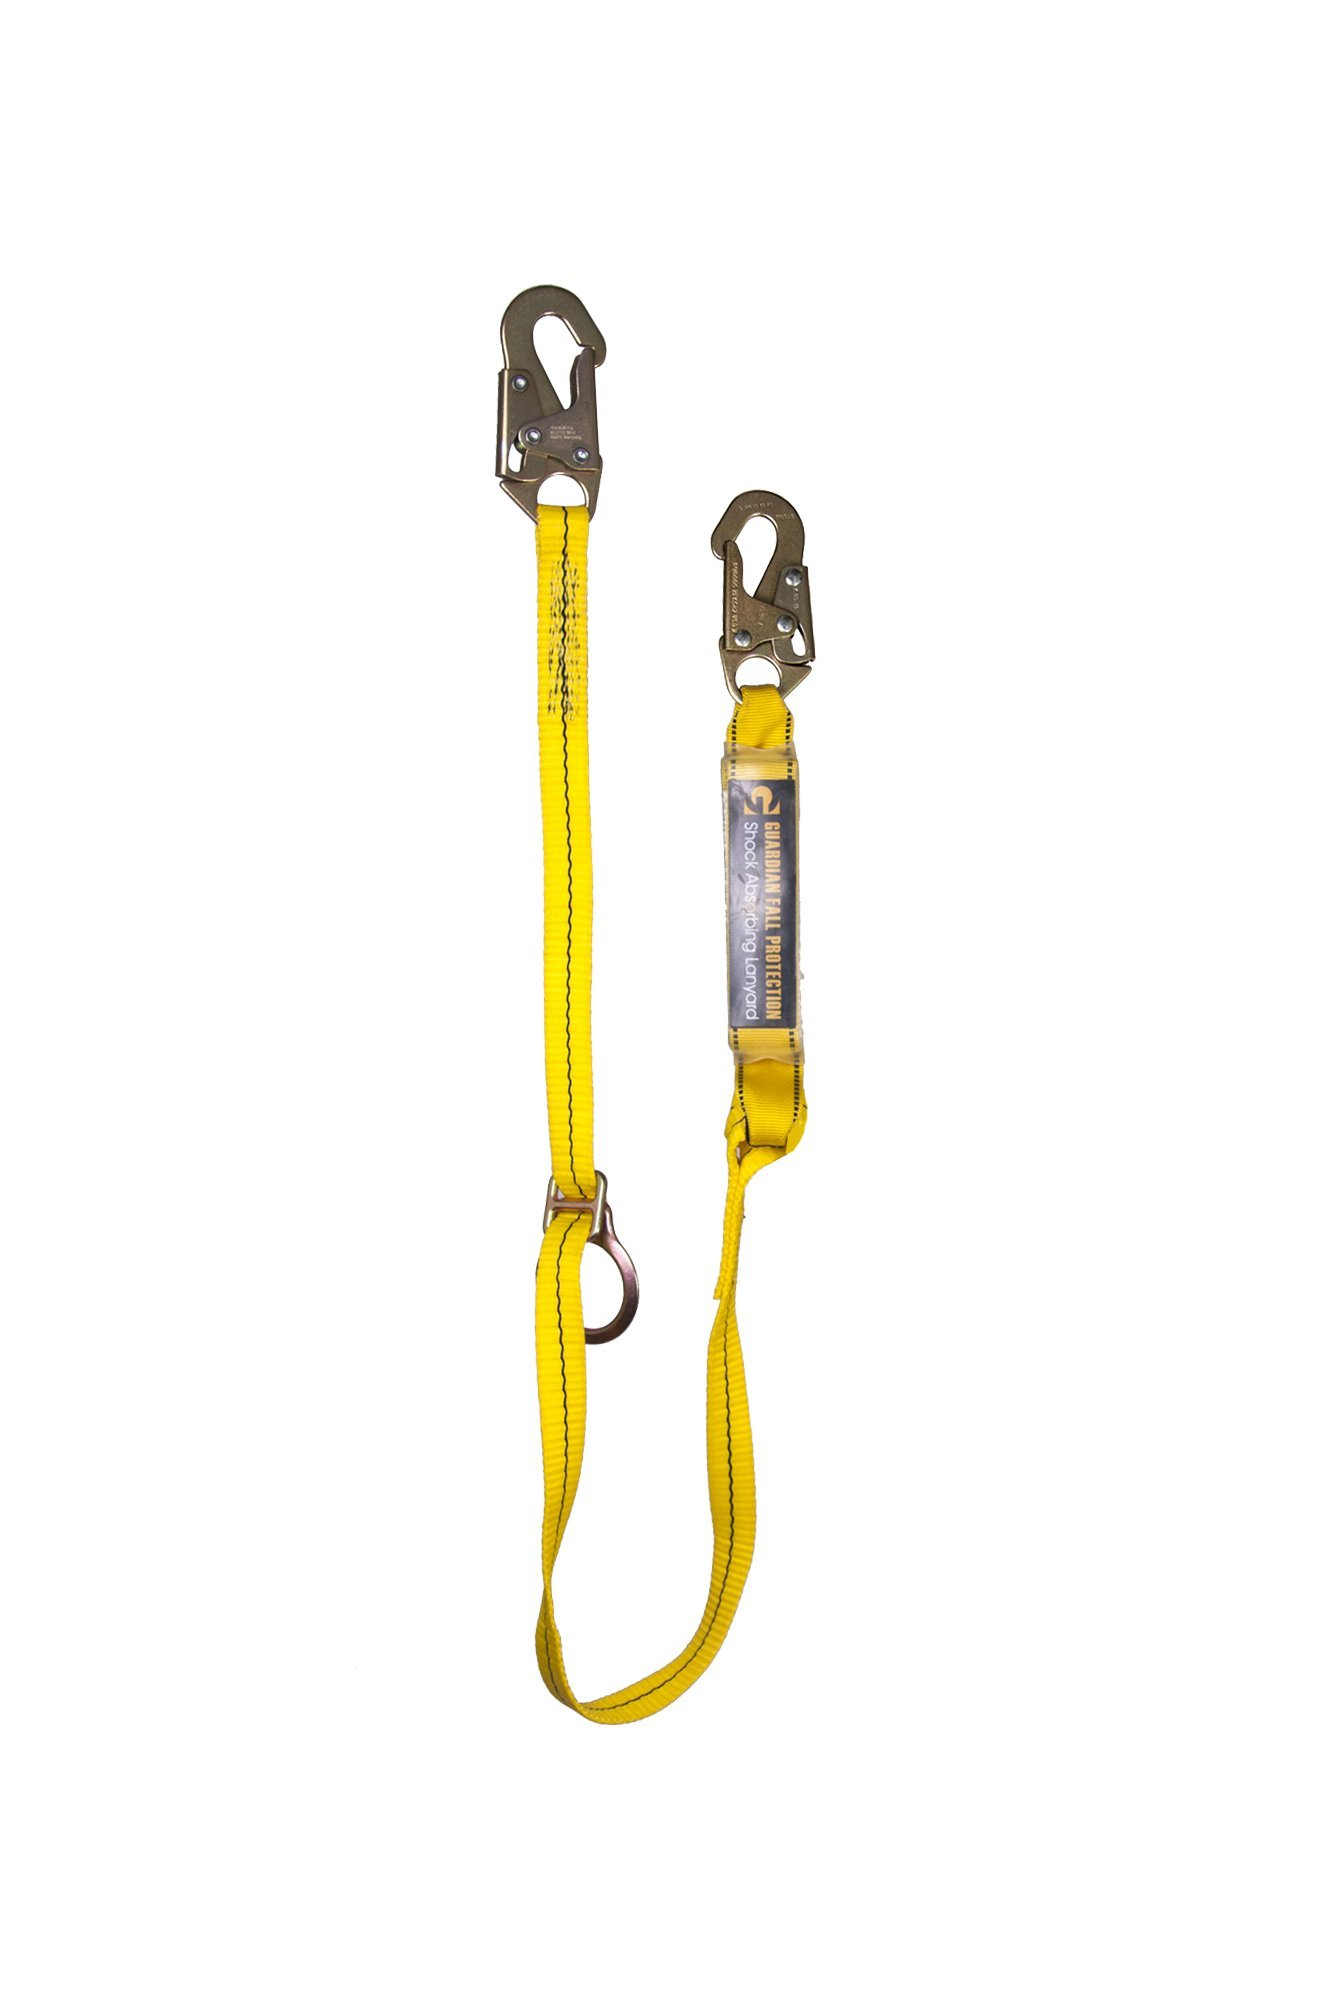 Guardian Fall Protection 01290 6-Foot Tie-Back Lanyard with Adjustable D-Ring